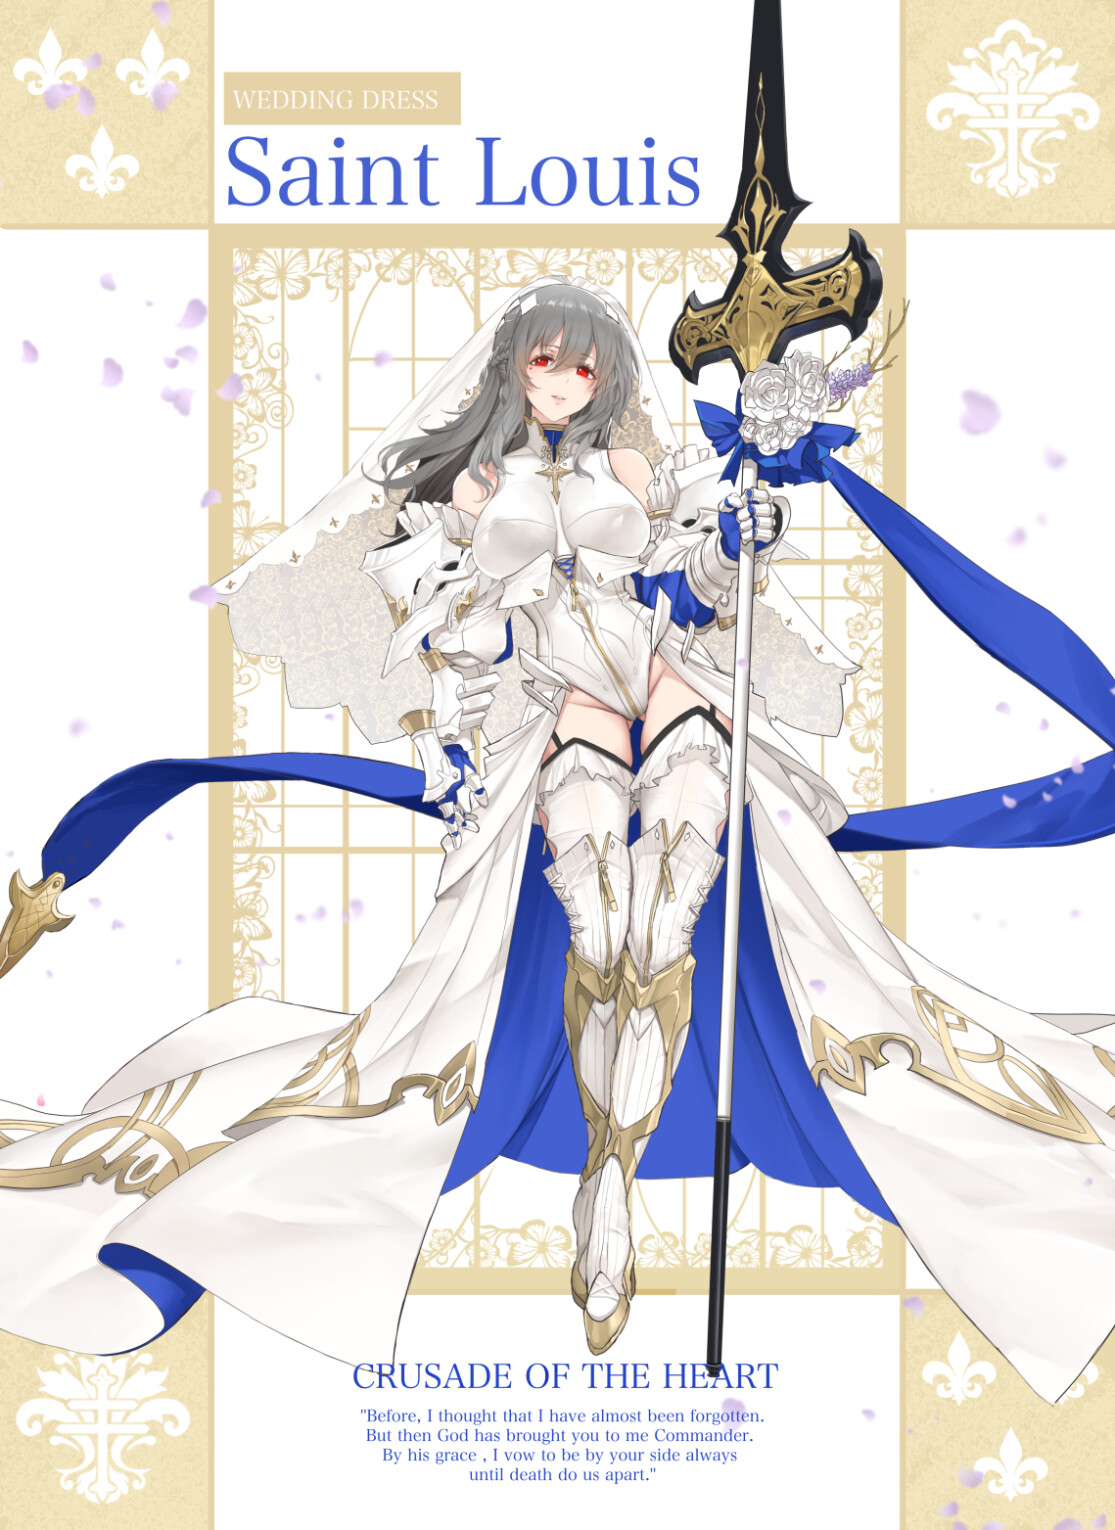 Saint Louis : Azur Lane Original skin